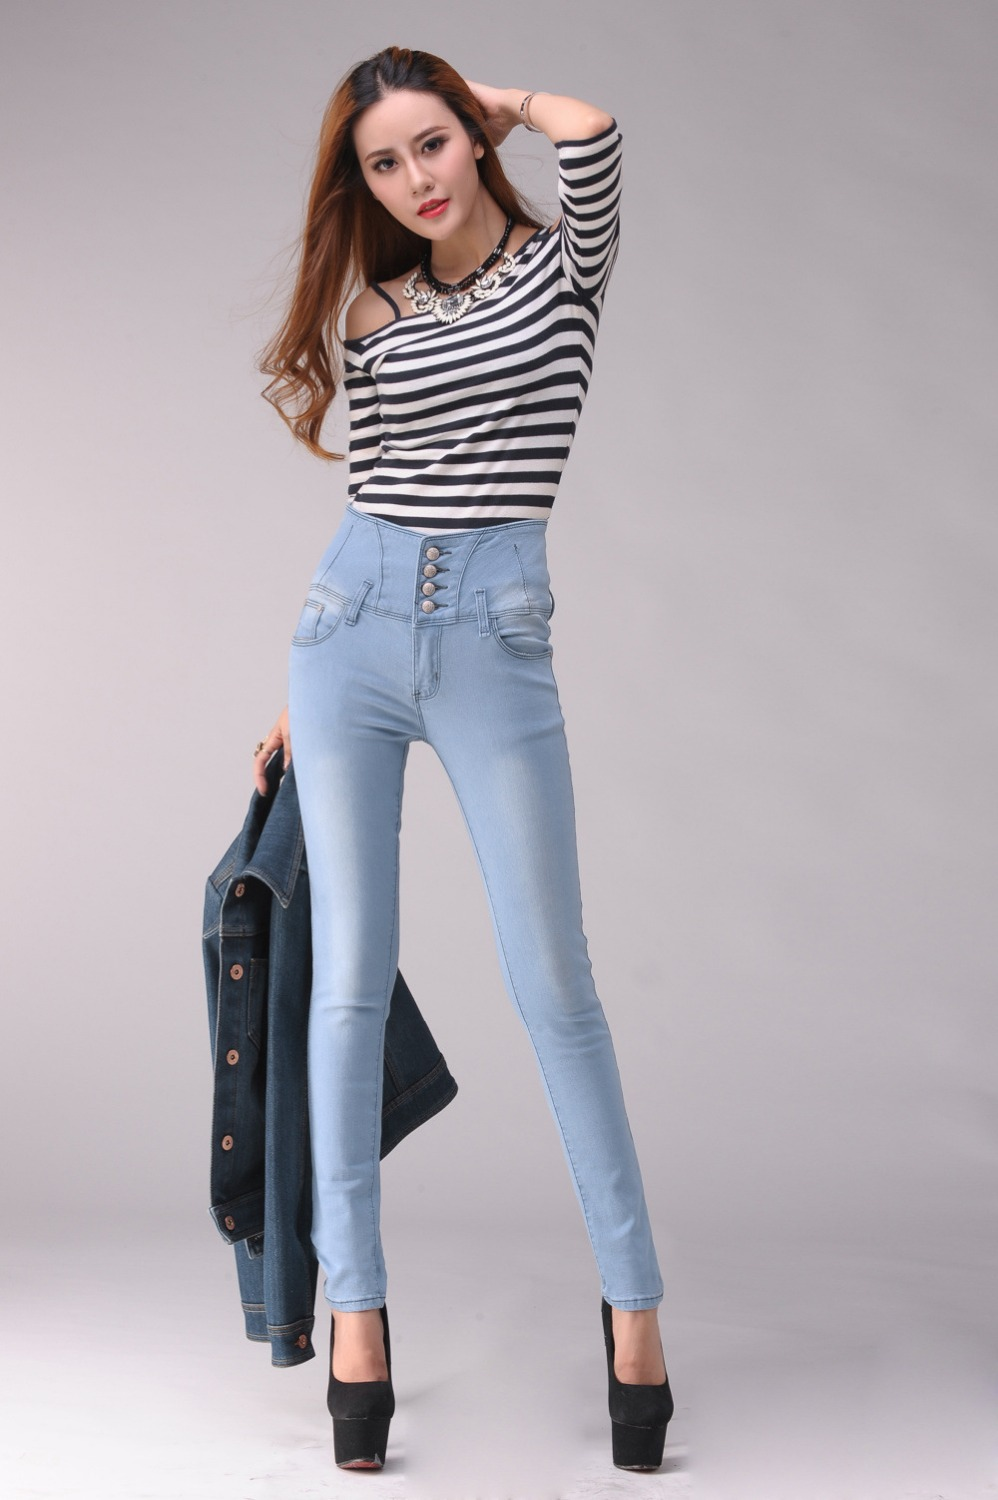 Women's High Rise Jeans. Buckle's collection of high rise jeans for women includes a variety of options to fit your unique style. Top off your outfit with the perfect tank, wedges, and hat or hair bloggeri.tk high-waisted jeans from many top brands, you'll find the perfect fit from the collection of high rise jeans for women at Buckle.